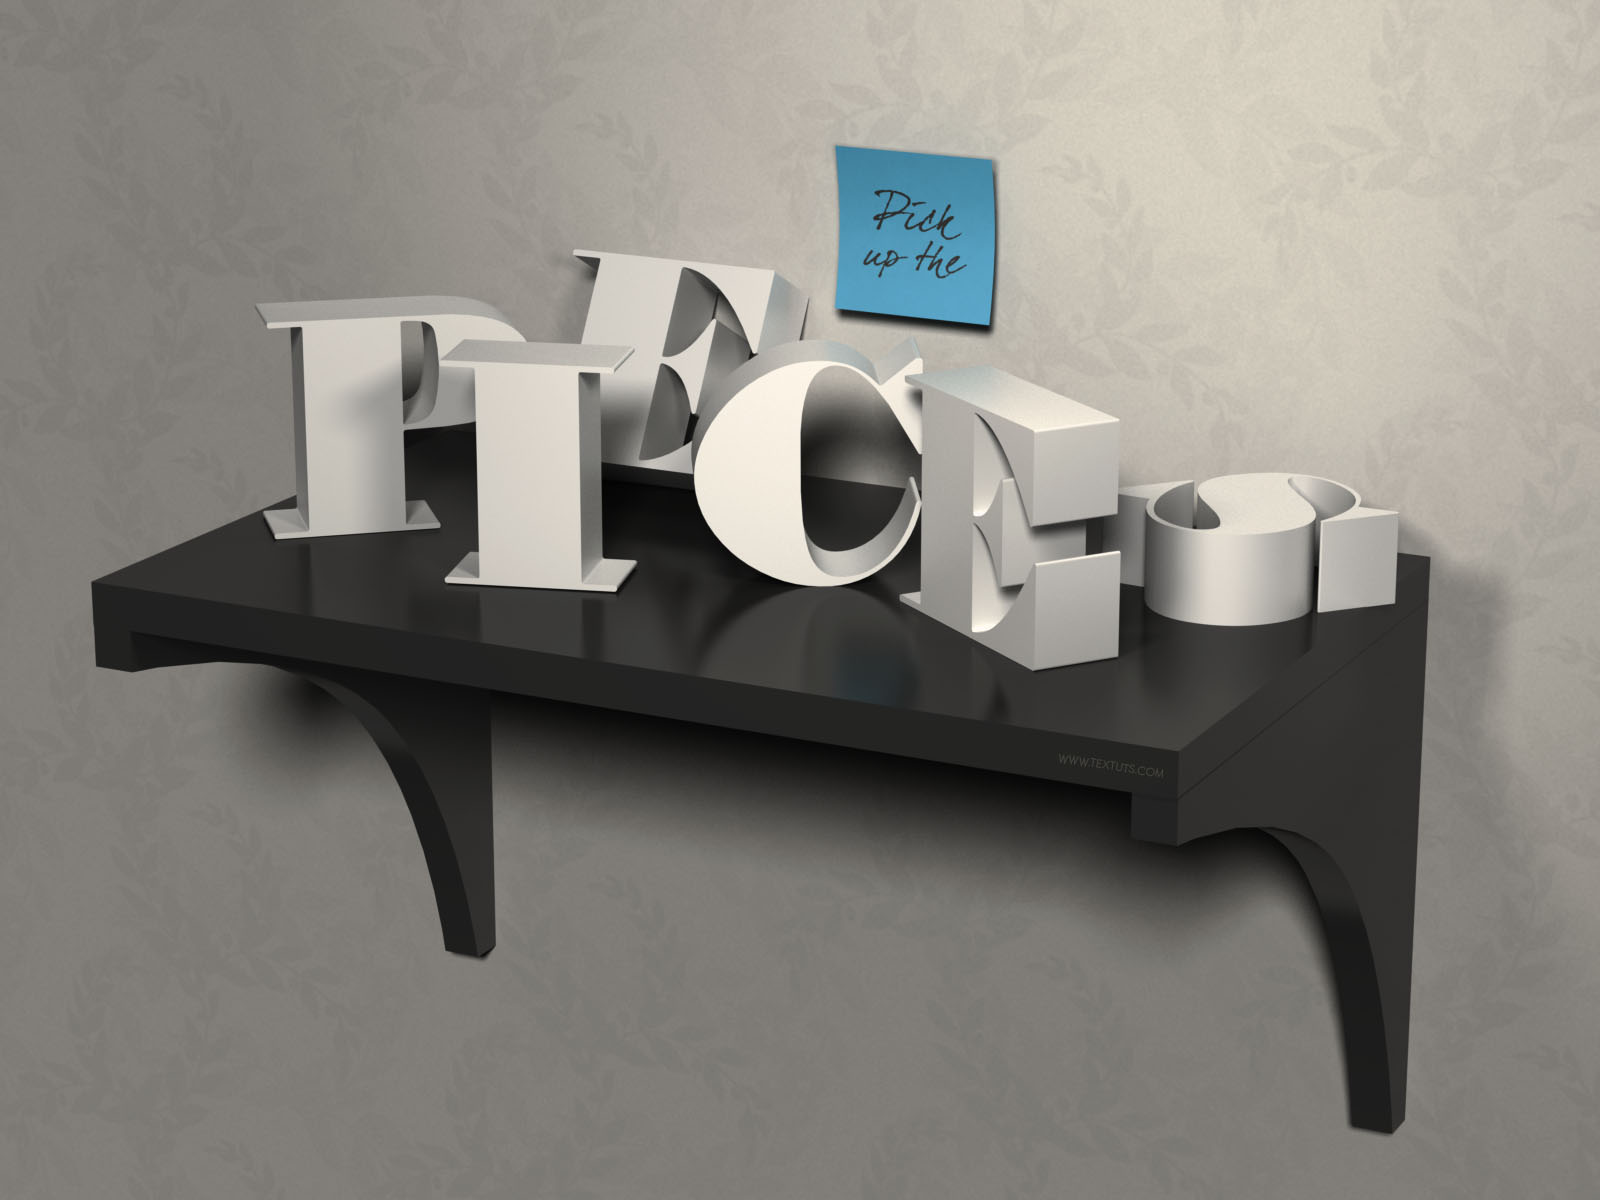 3d letters on a shelf text effect psd drawer font textuts 3d letters on a shelf text effect tutorial details baditri Gallery